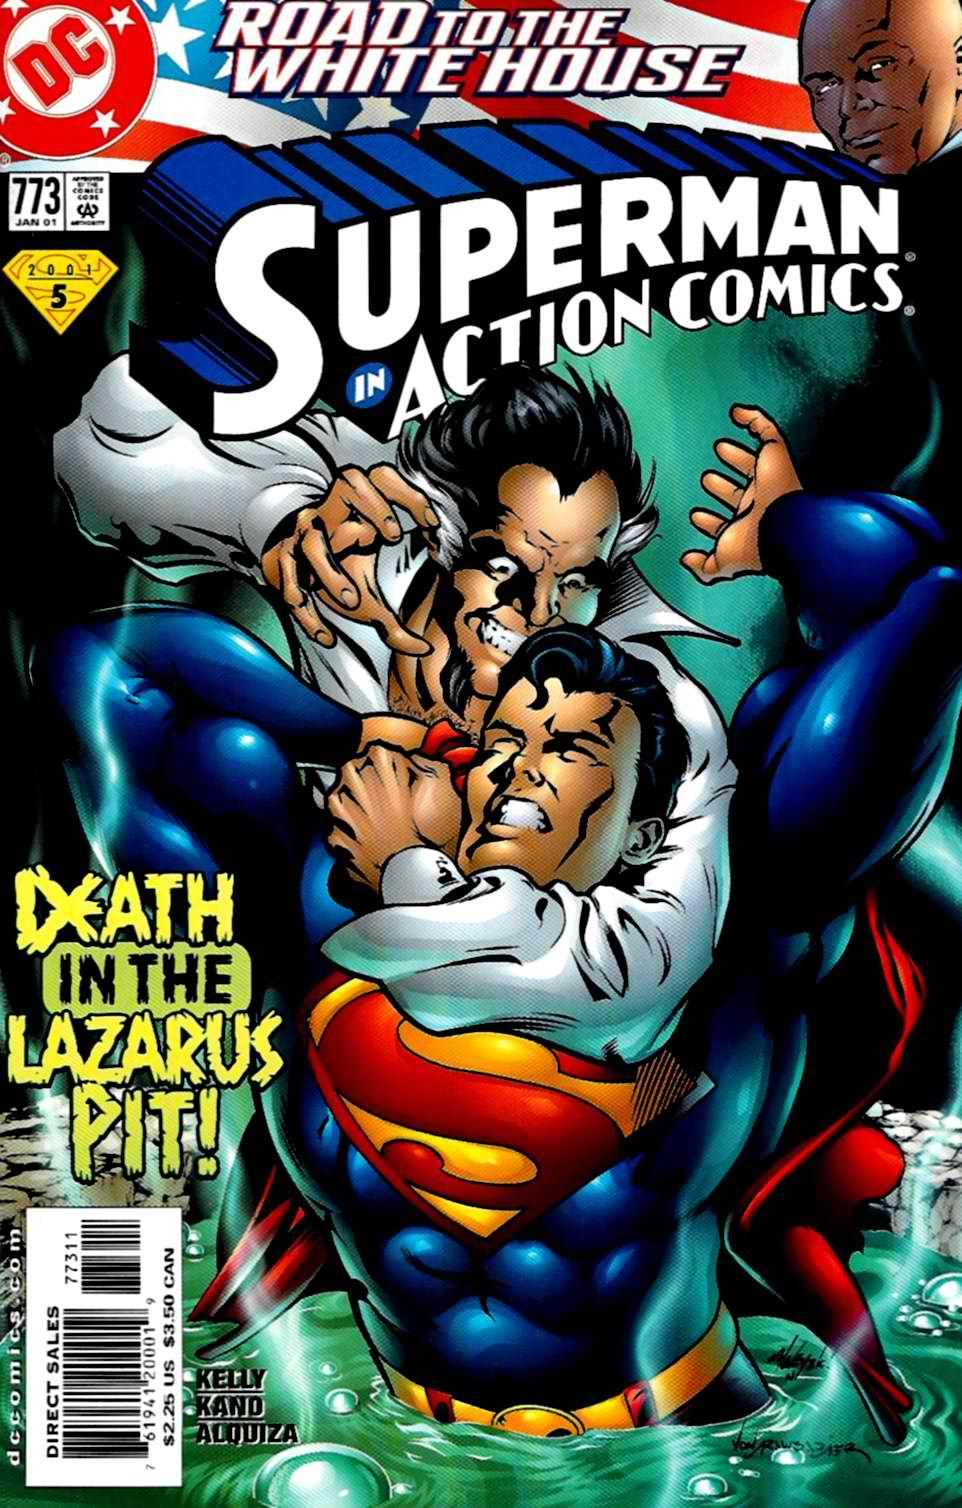 Read online Action Comics (1938) comic -  Issue #773 - 1